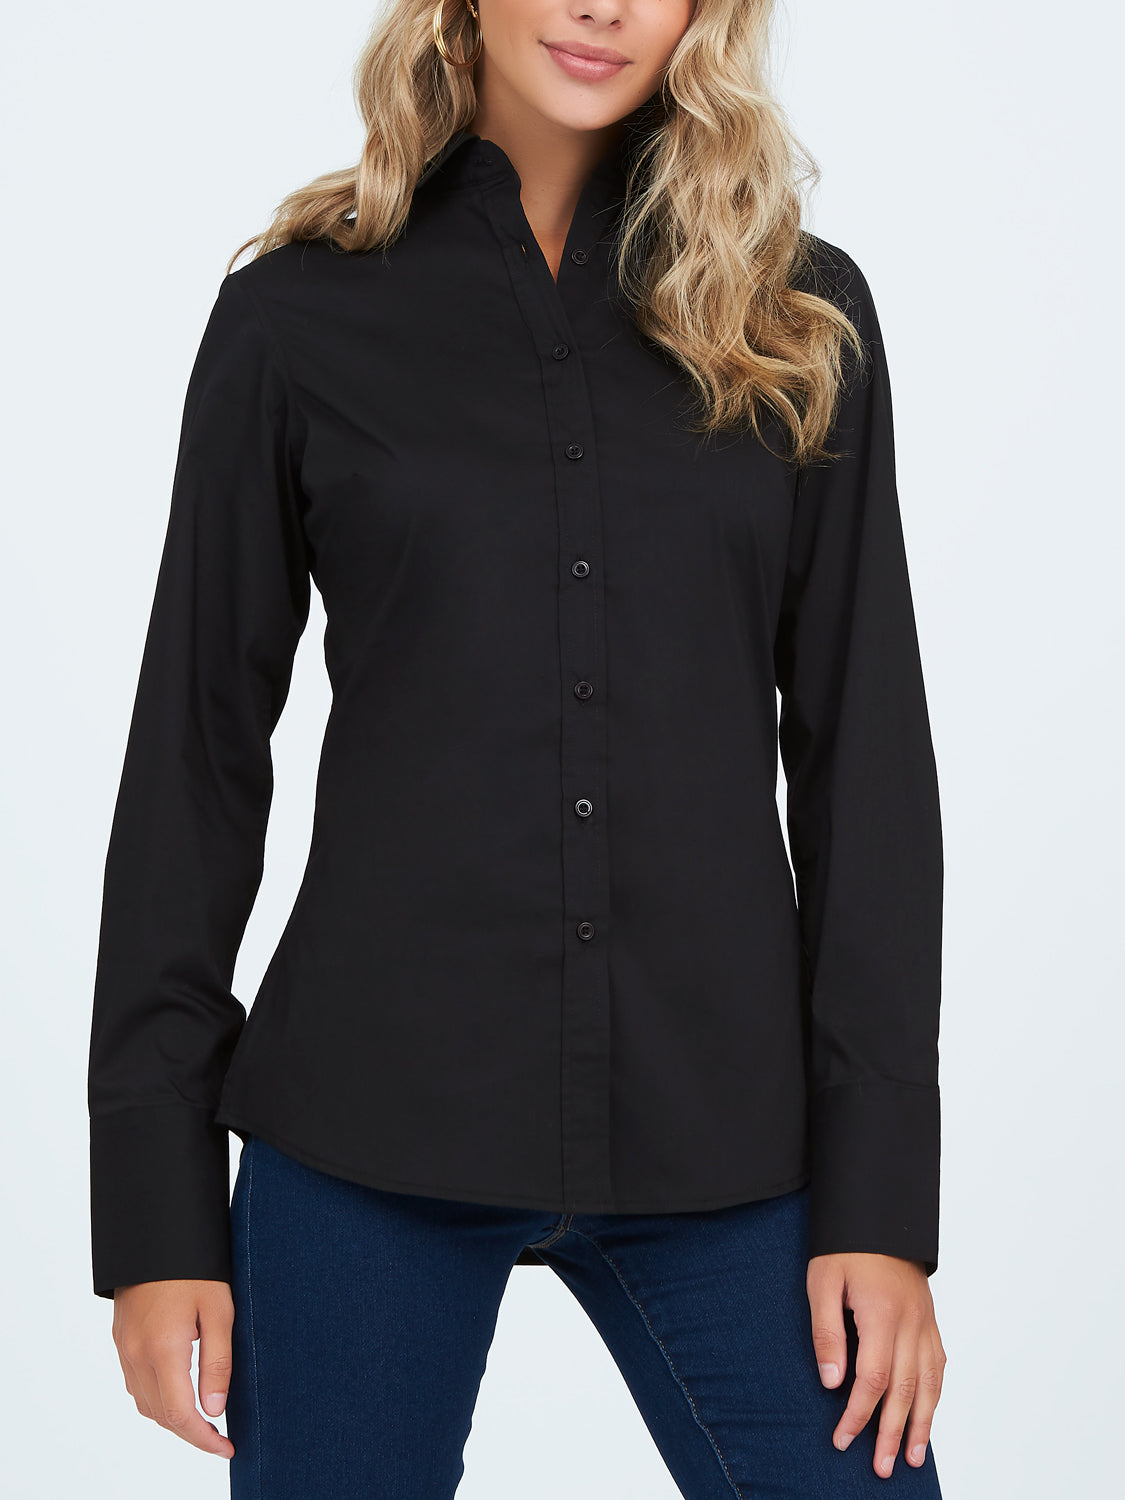 Long Sleeve Cuffed Shirt